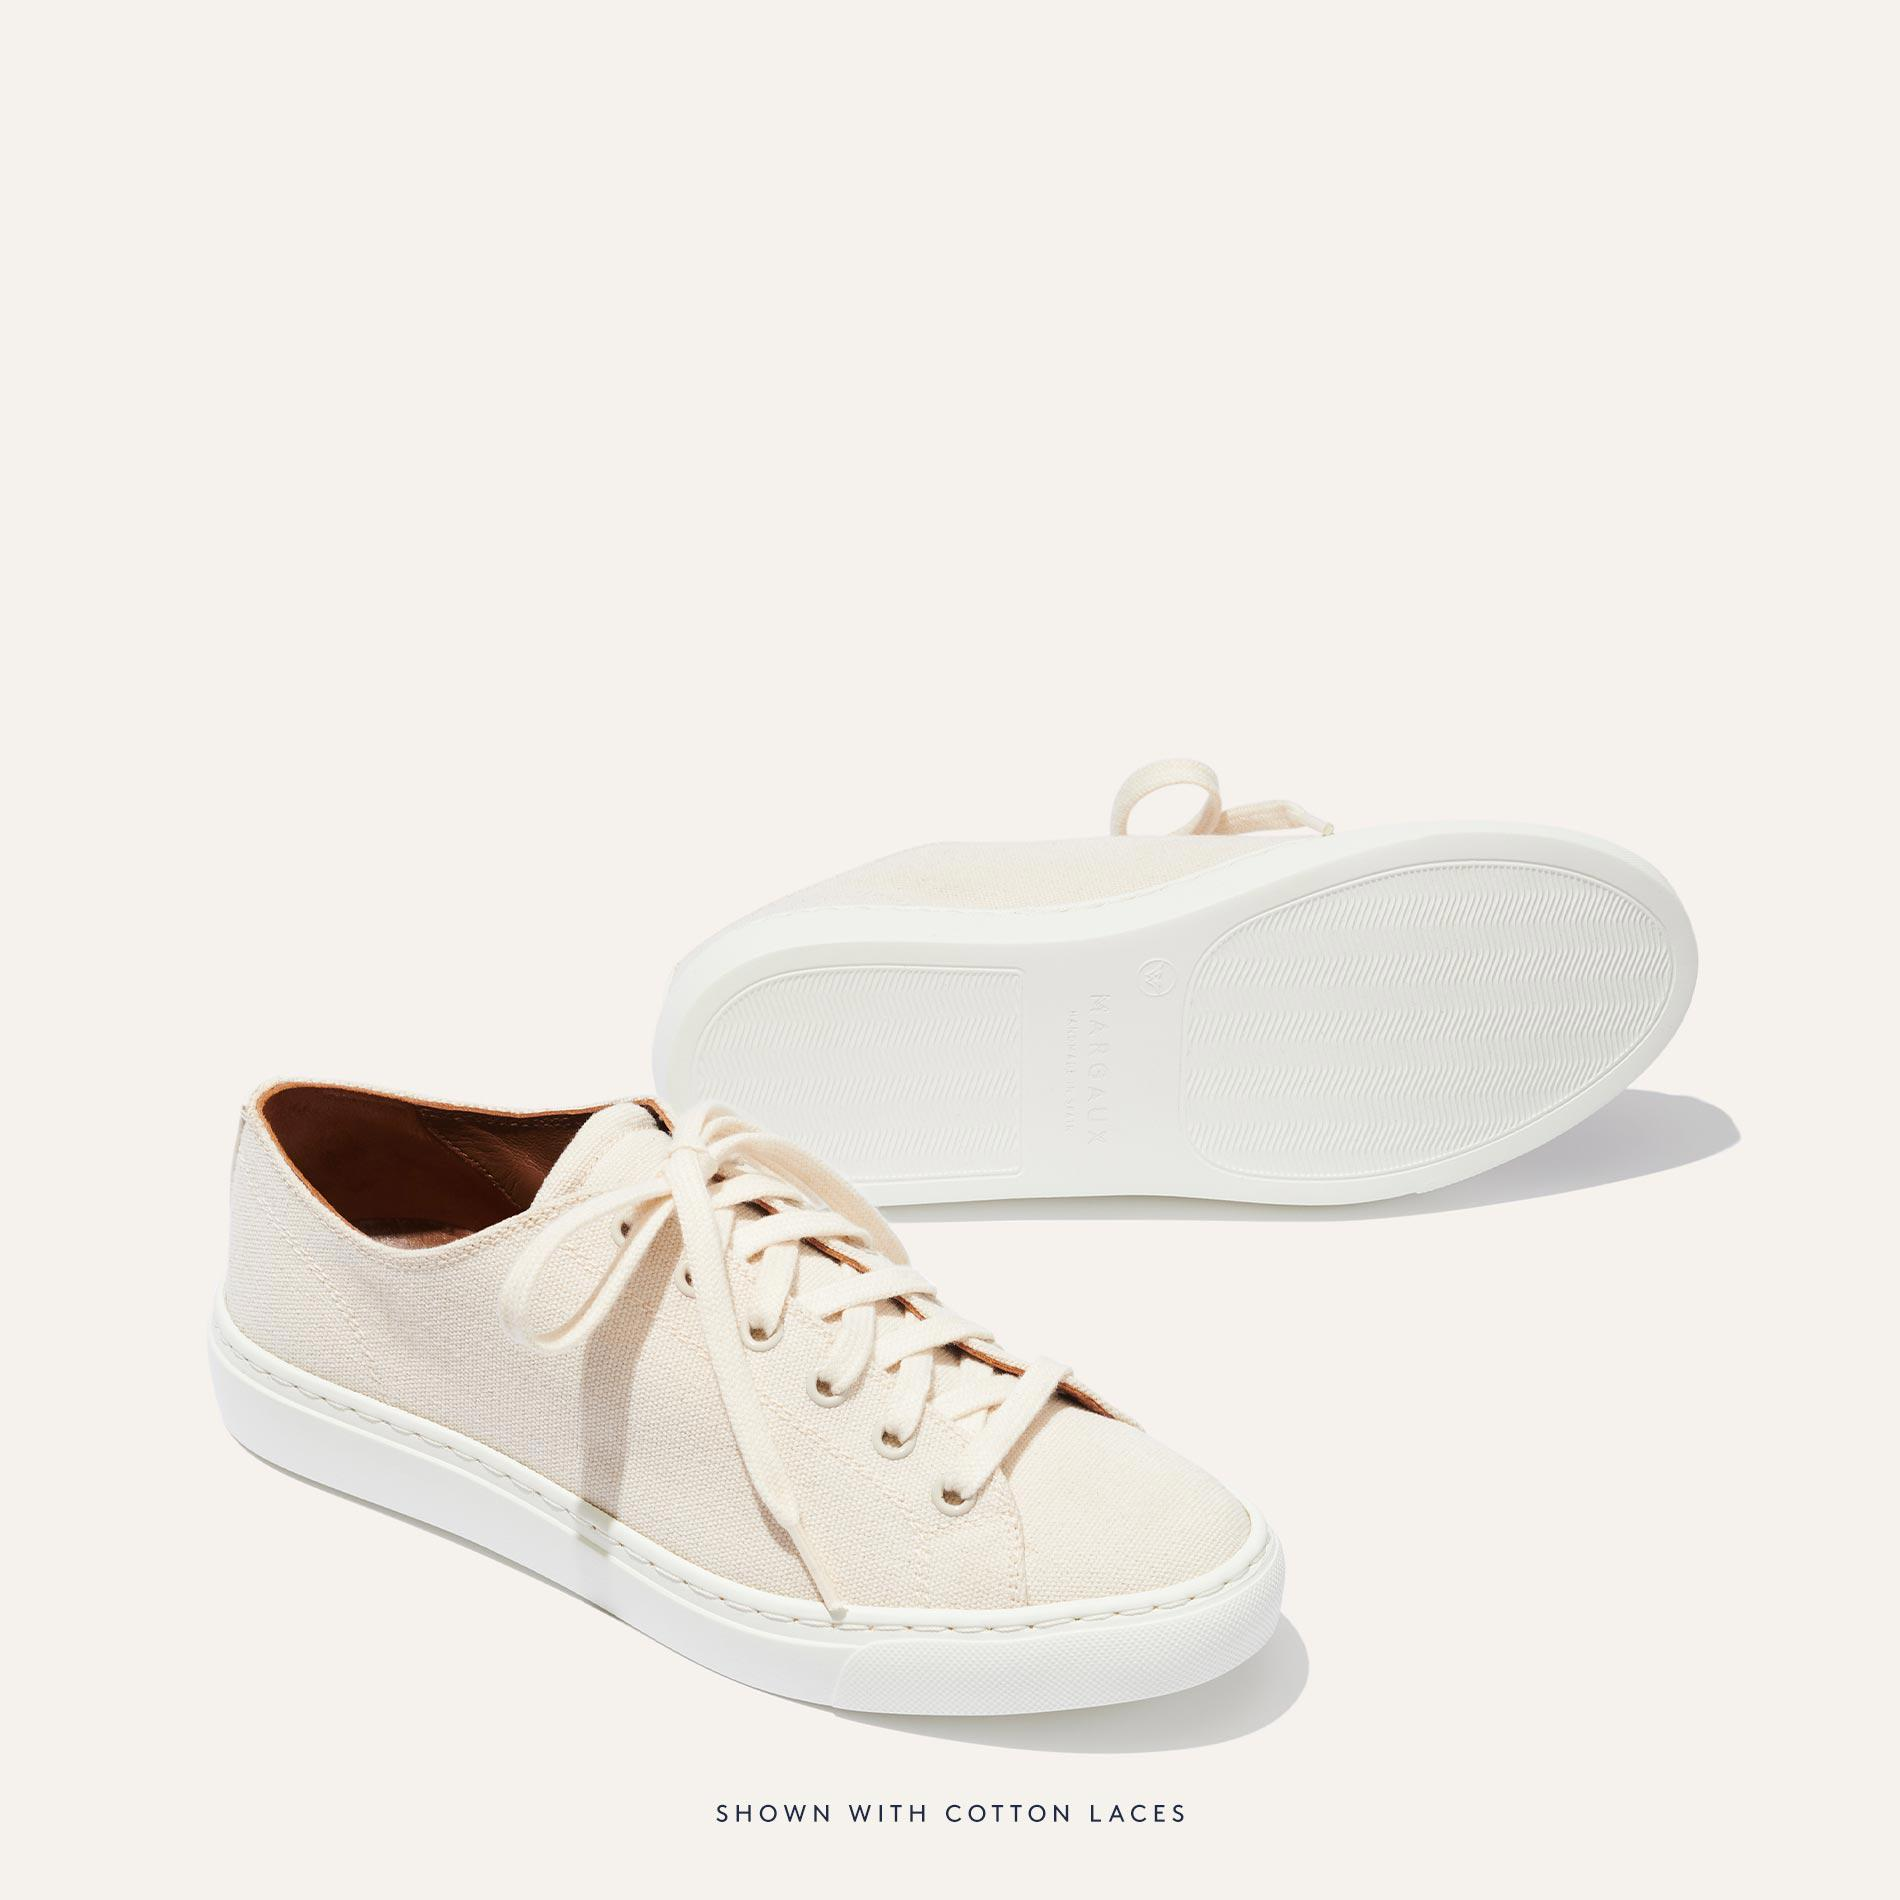 The Summer Sneaker - Ivory Canvas 2